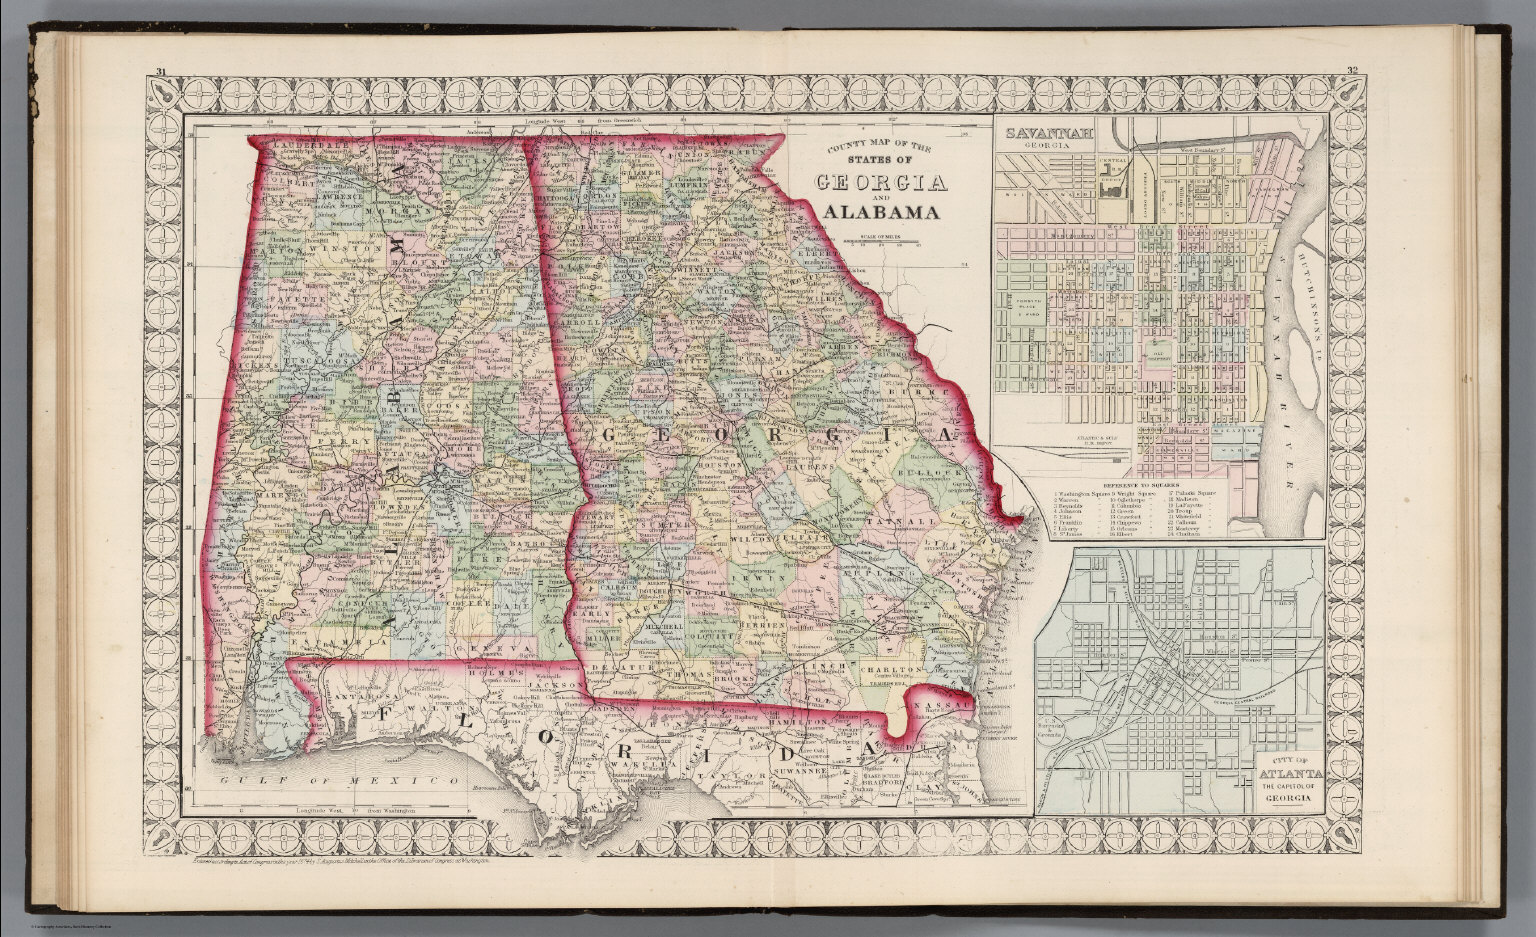 County Map of the States of Georgia and Alabama  - David